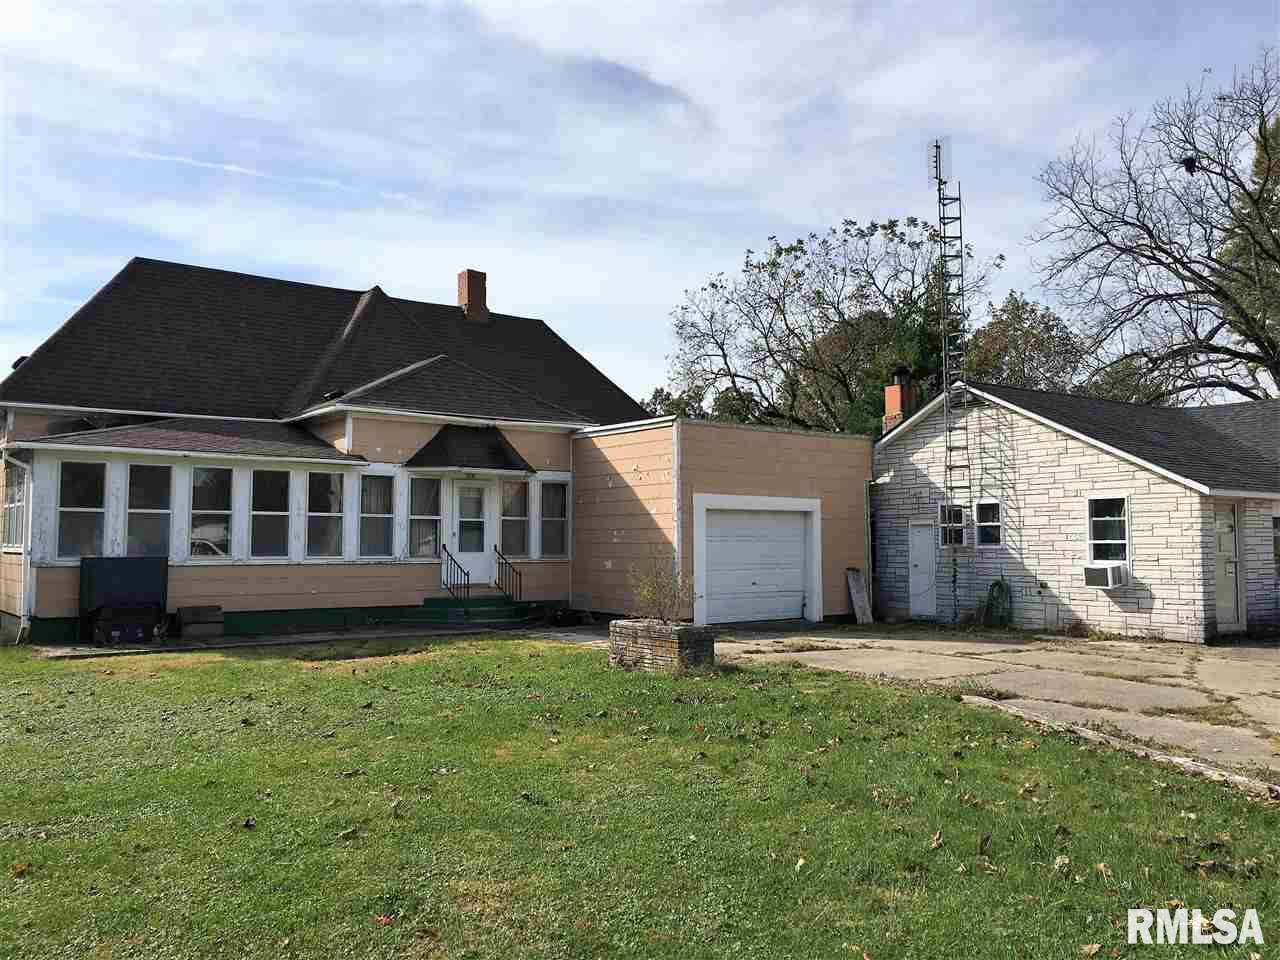 218 E BROADWAY Property Photo - Astoria, IL real estate listing